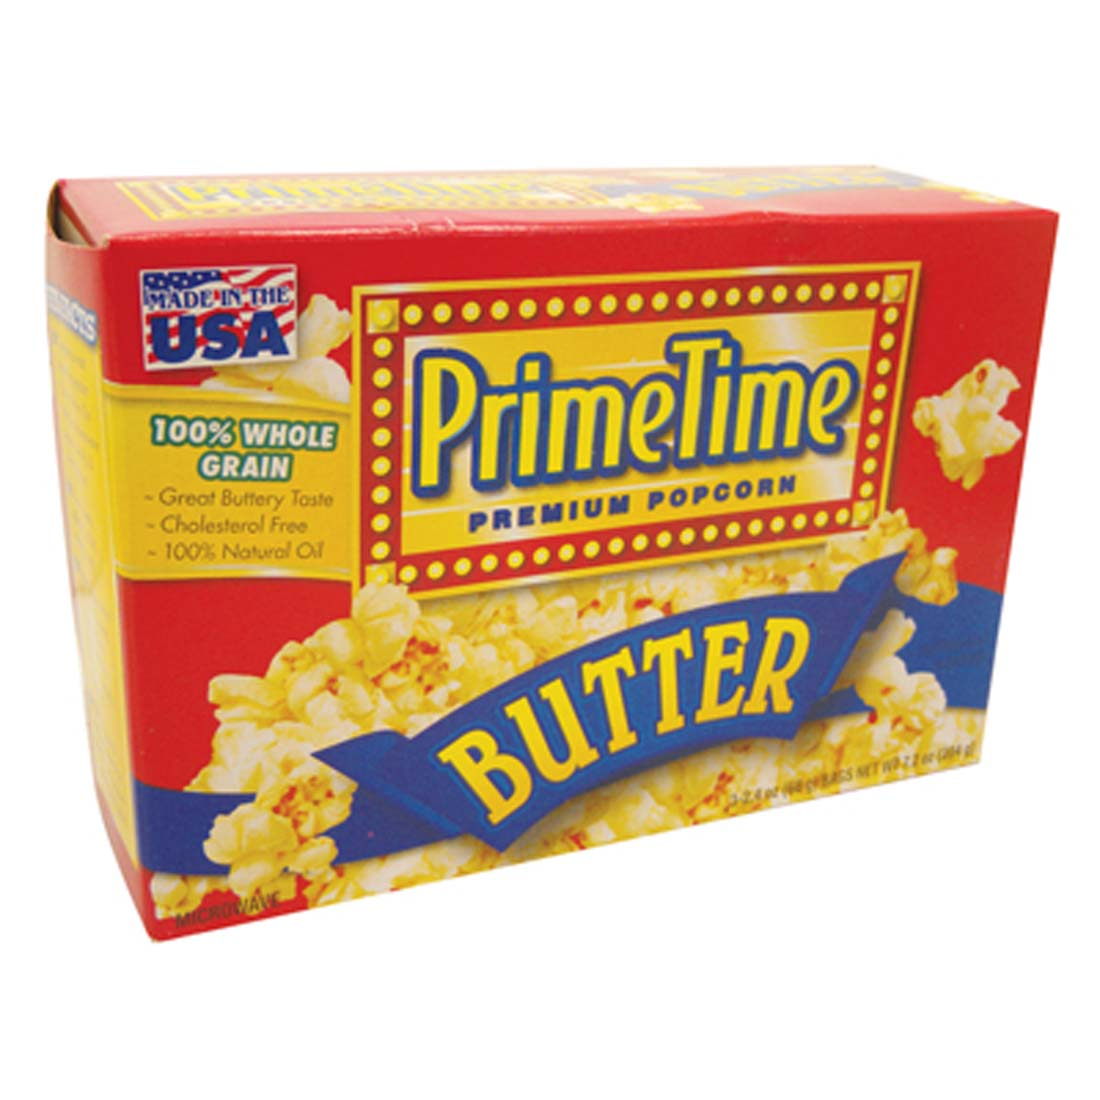 View PRIME TIME MICROWAVE POPCORN 3 PK 2.4 OZ EA. BUTTER FLAVOR **MADE IN USA**